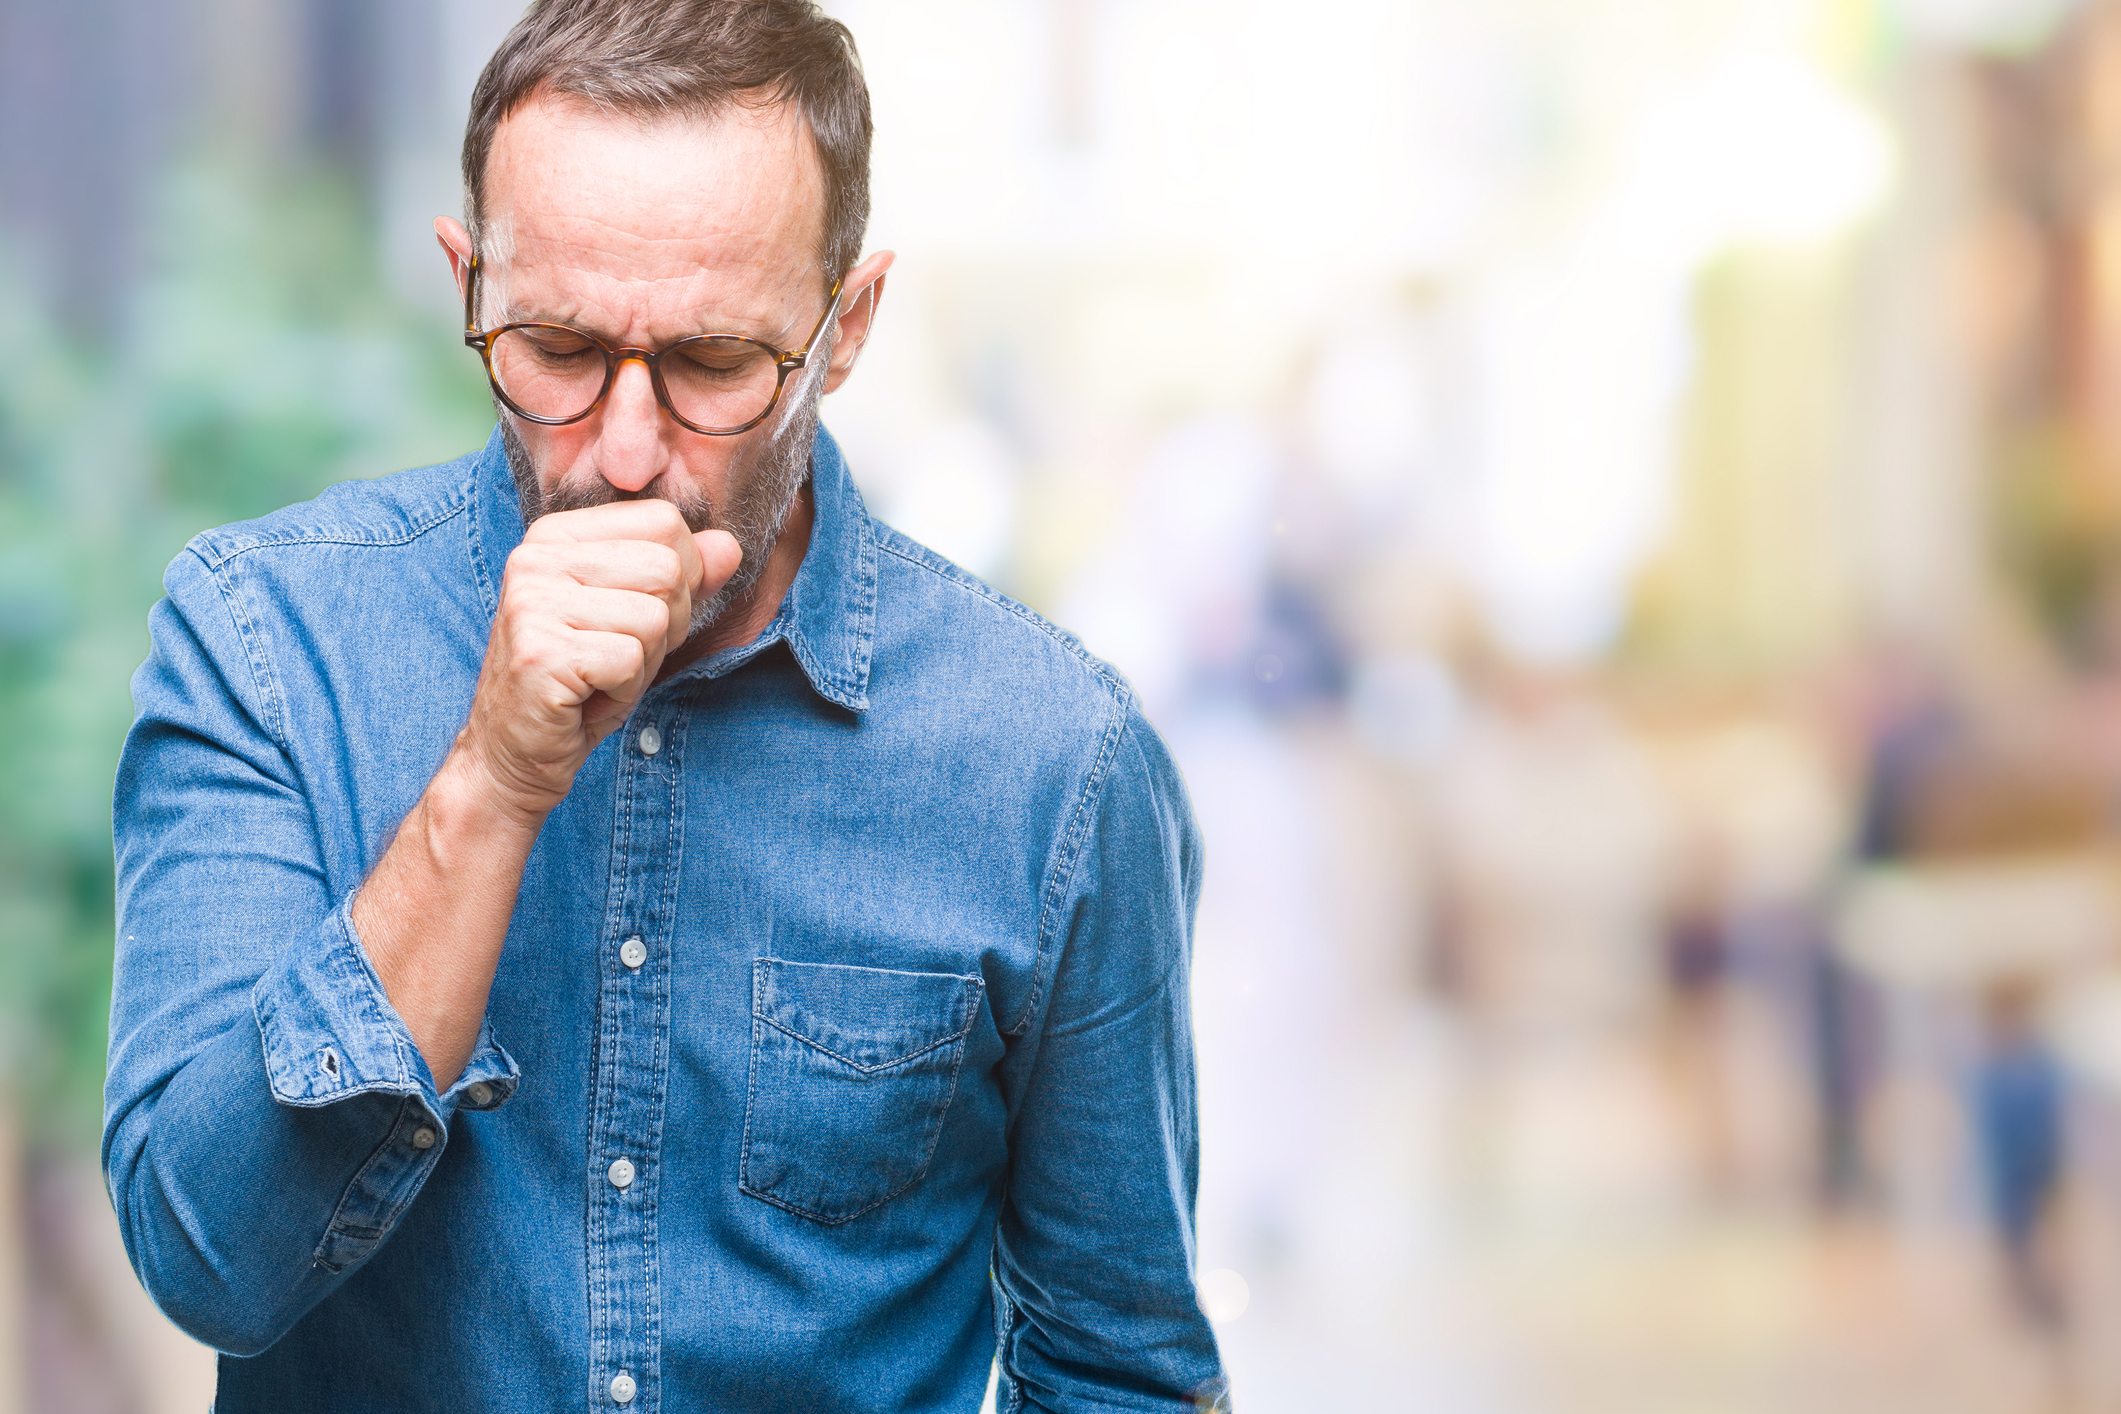 Man wheezing which may be a symptom of heart failure